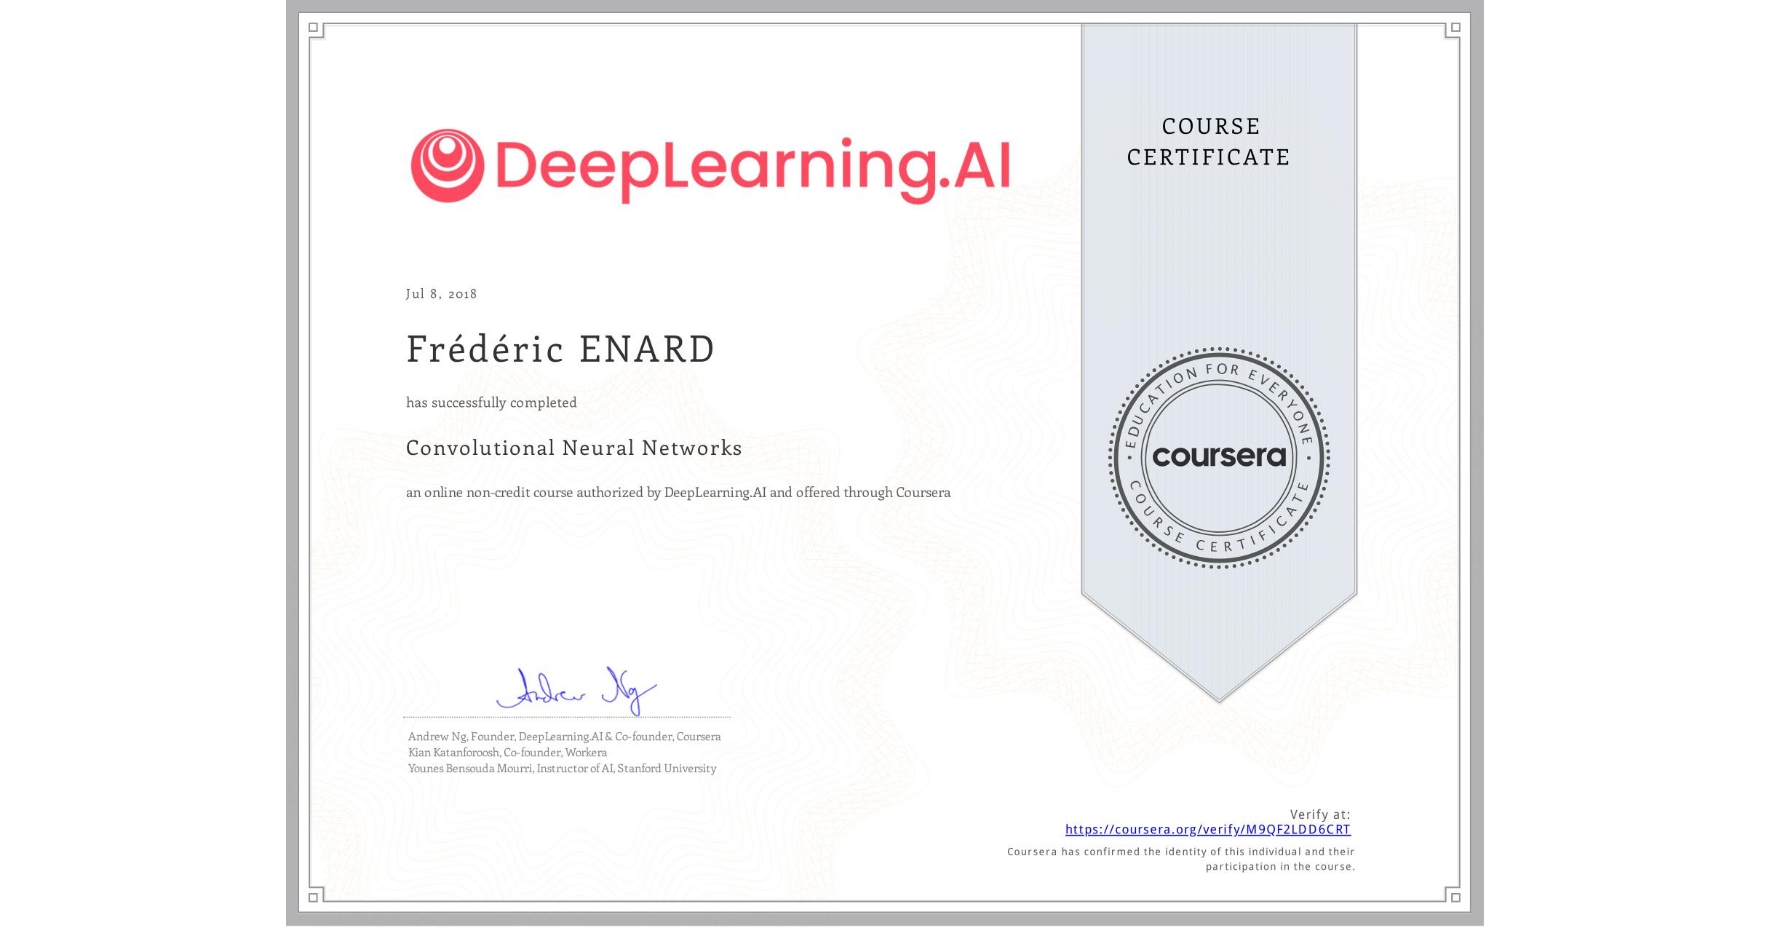 View certificate for Frédéric ENARD, Convolutional Neural Networks, an online non-credit course authorized by DeepLearning.AI and offered through Coursera